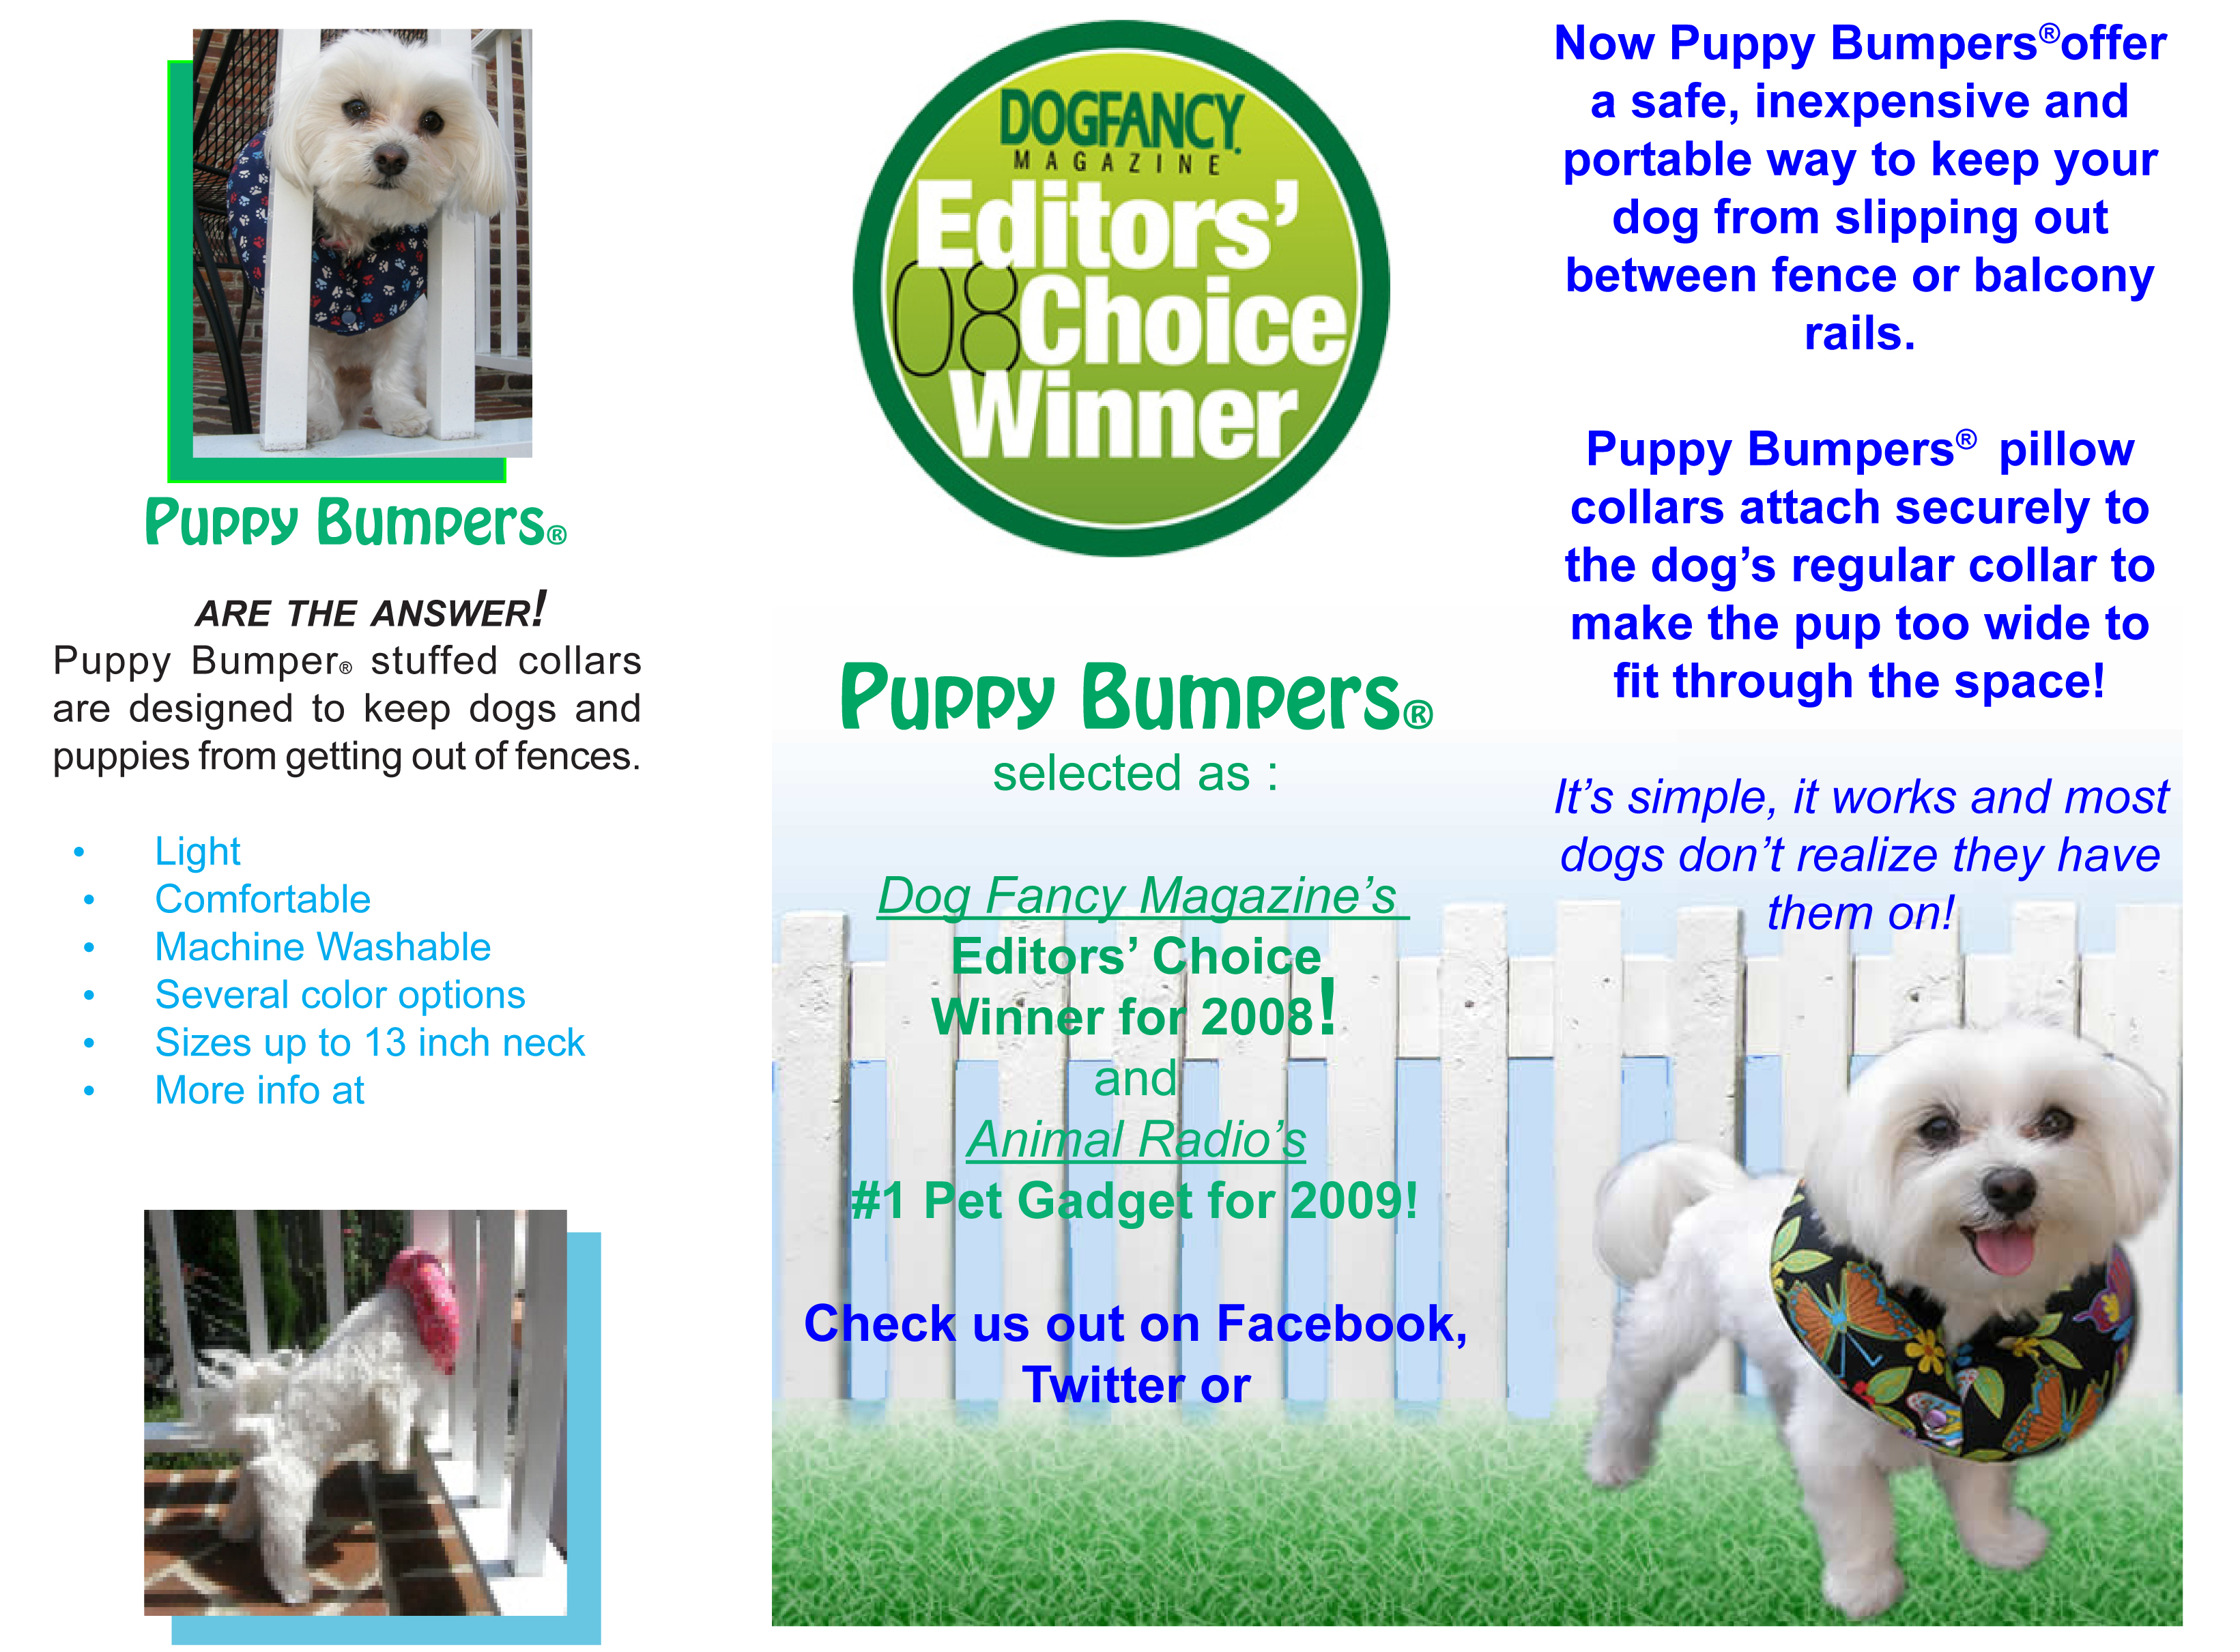 puppy bumpers dog safety pillow collars to prevent escapees